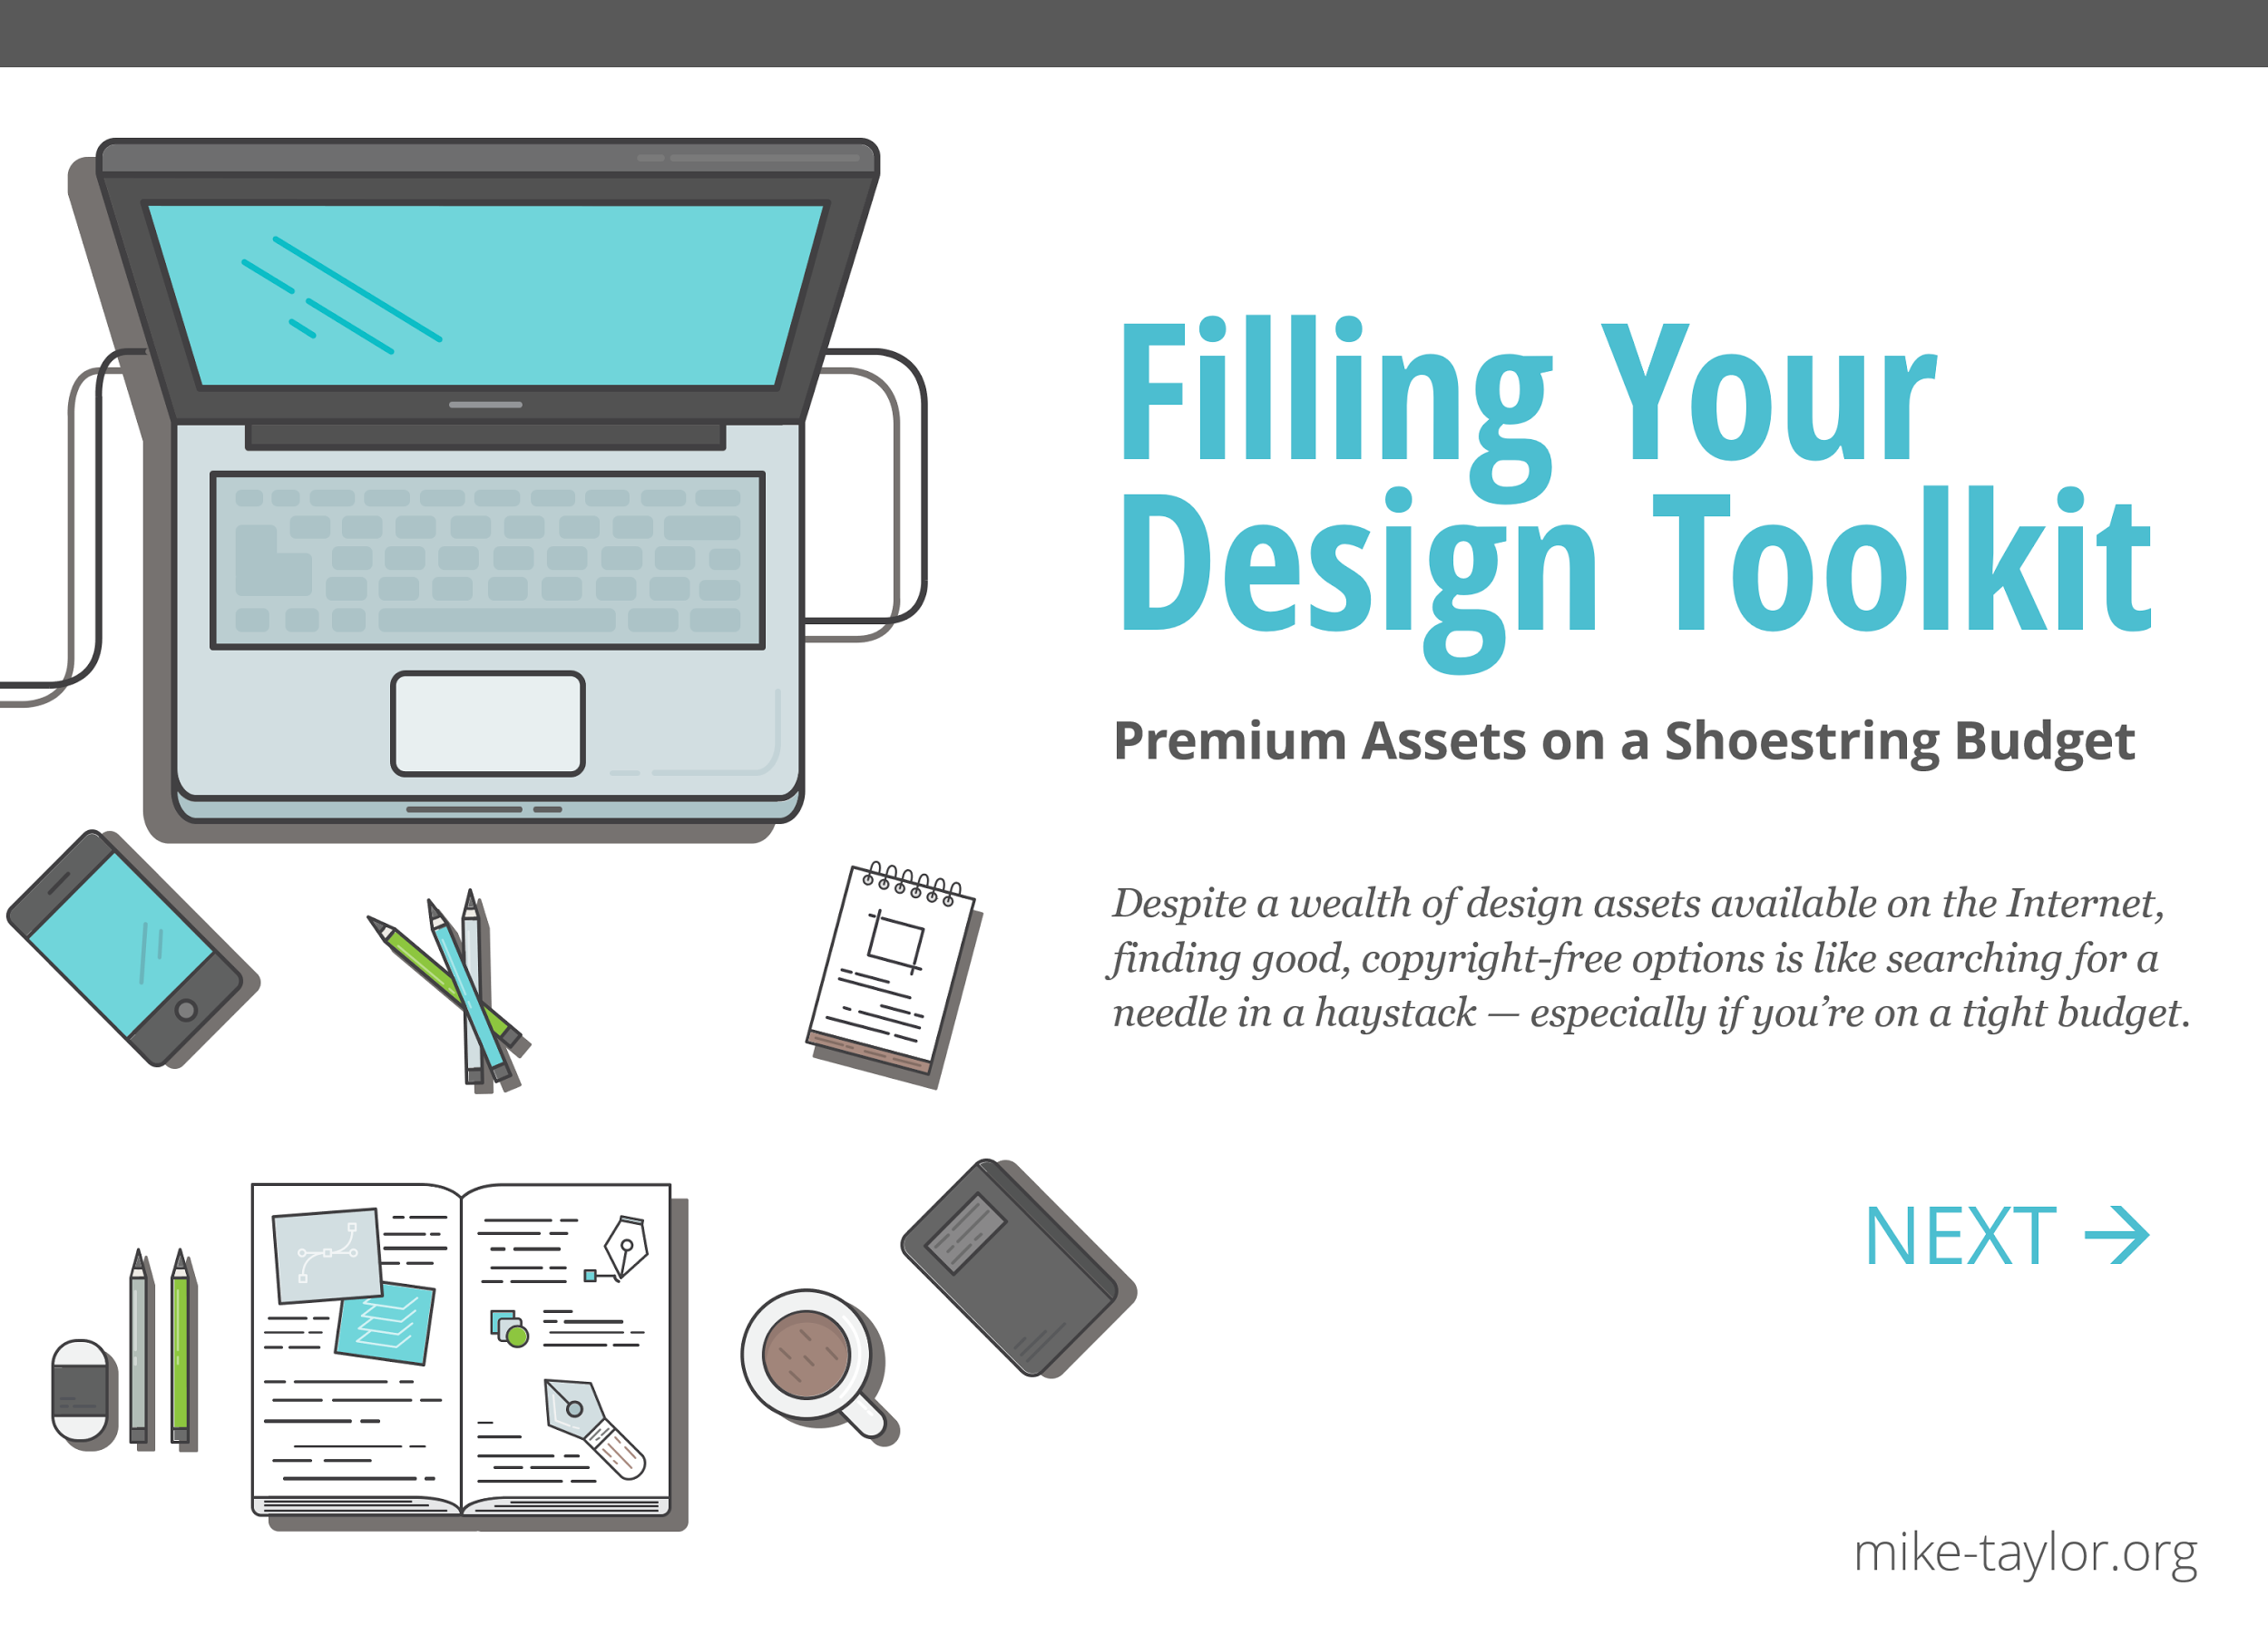 Free Ebook: Filling Your Design Toolkit